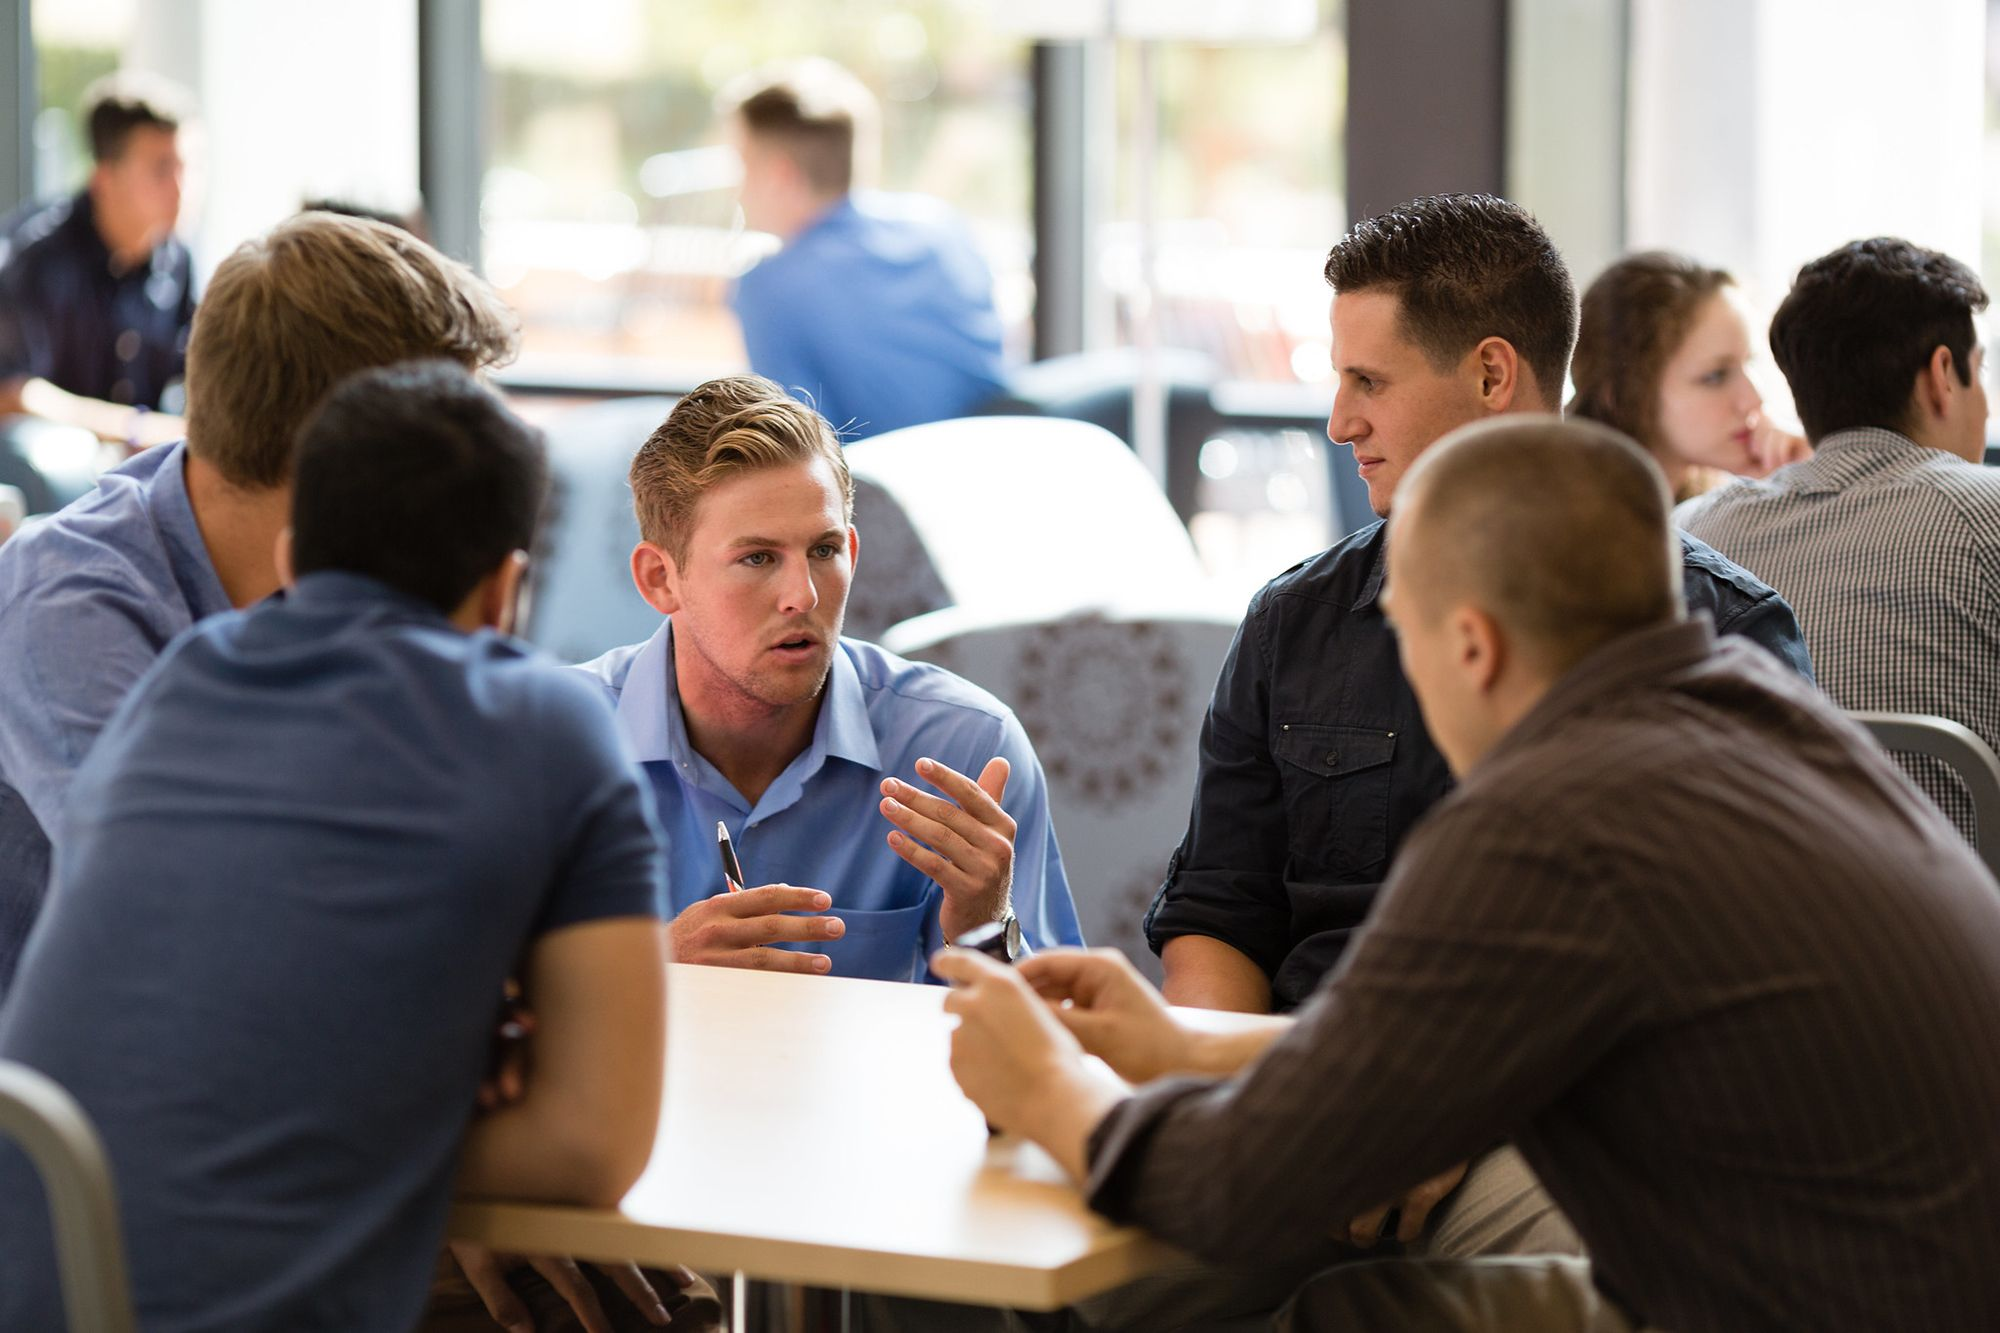 A student speaking intently to his colleagues gathered around a table.